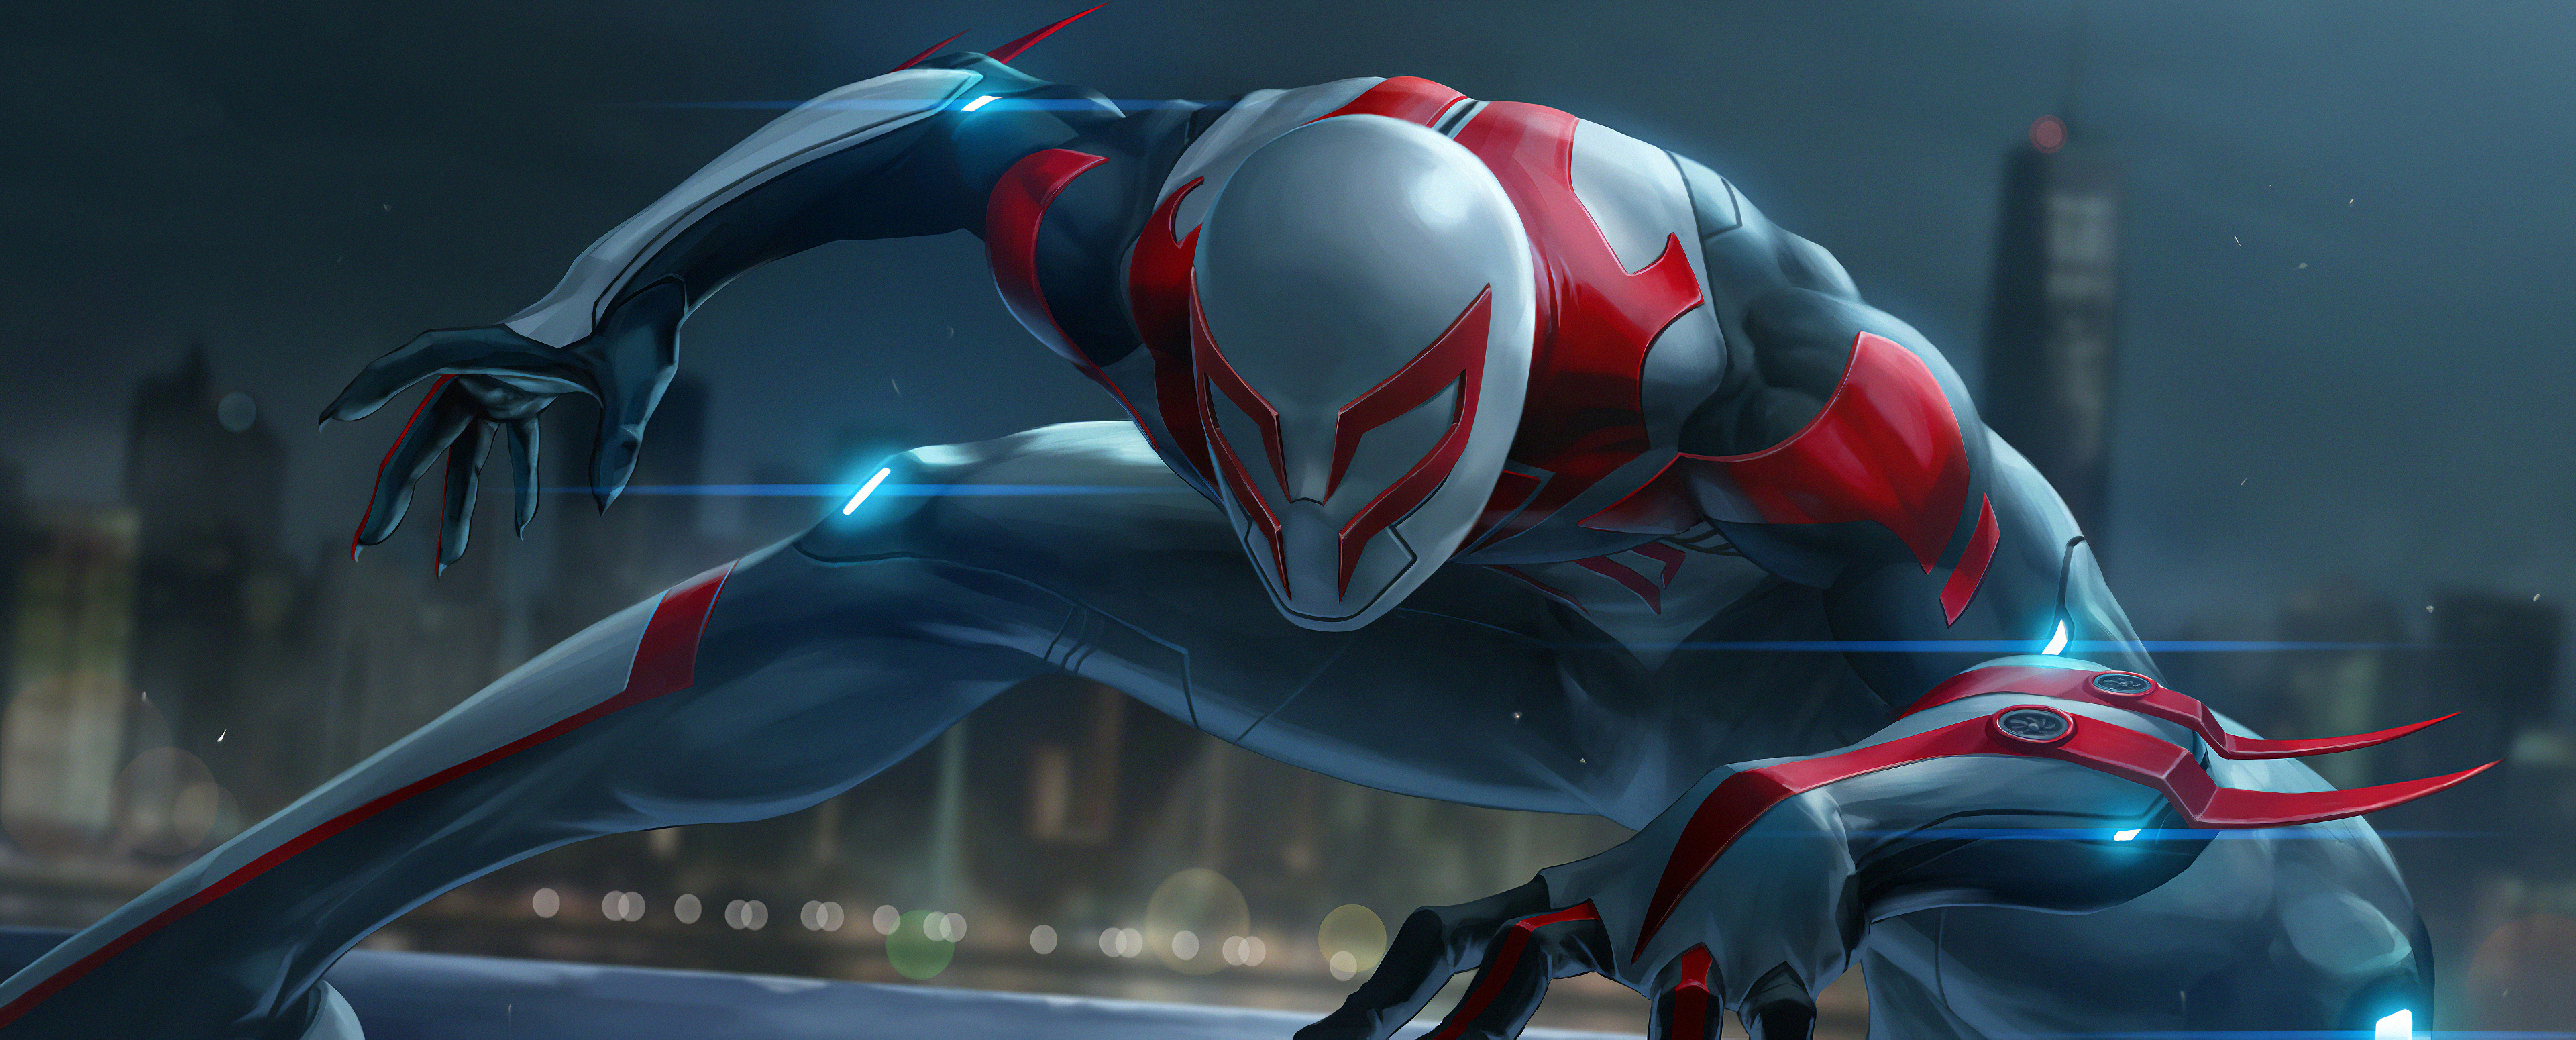 Wallpaper 4k Spiderman 2099 Marel Future Fight Spiderman 2099 Hd